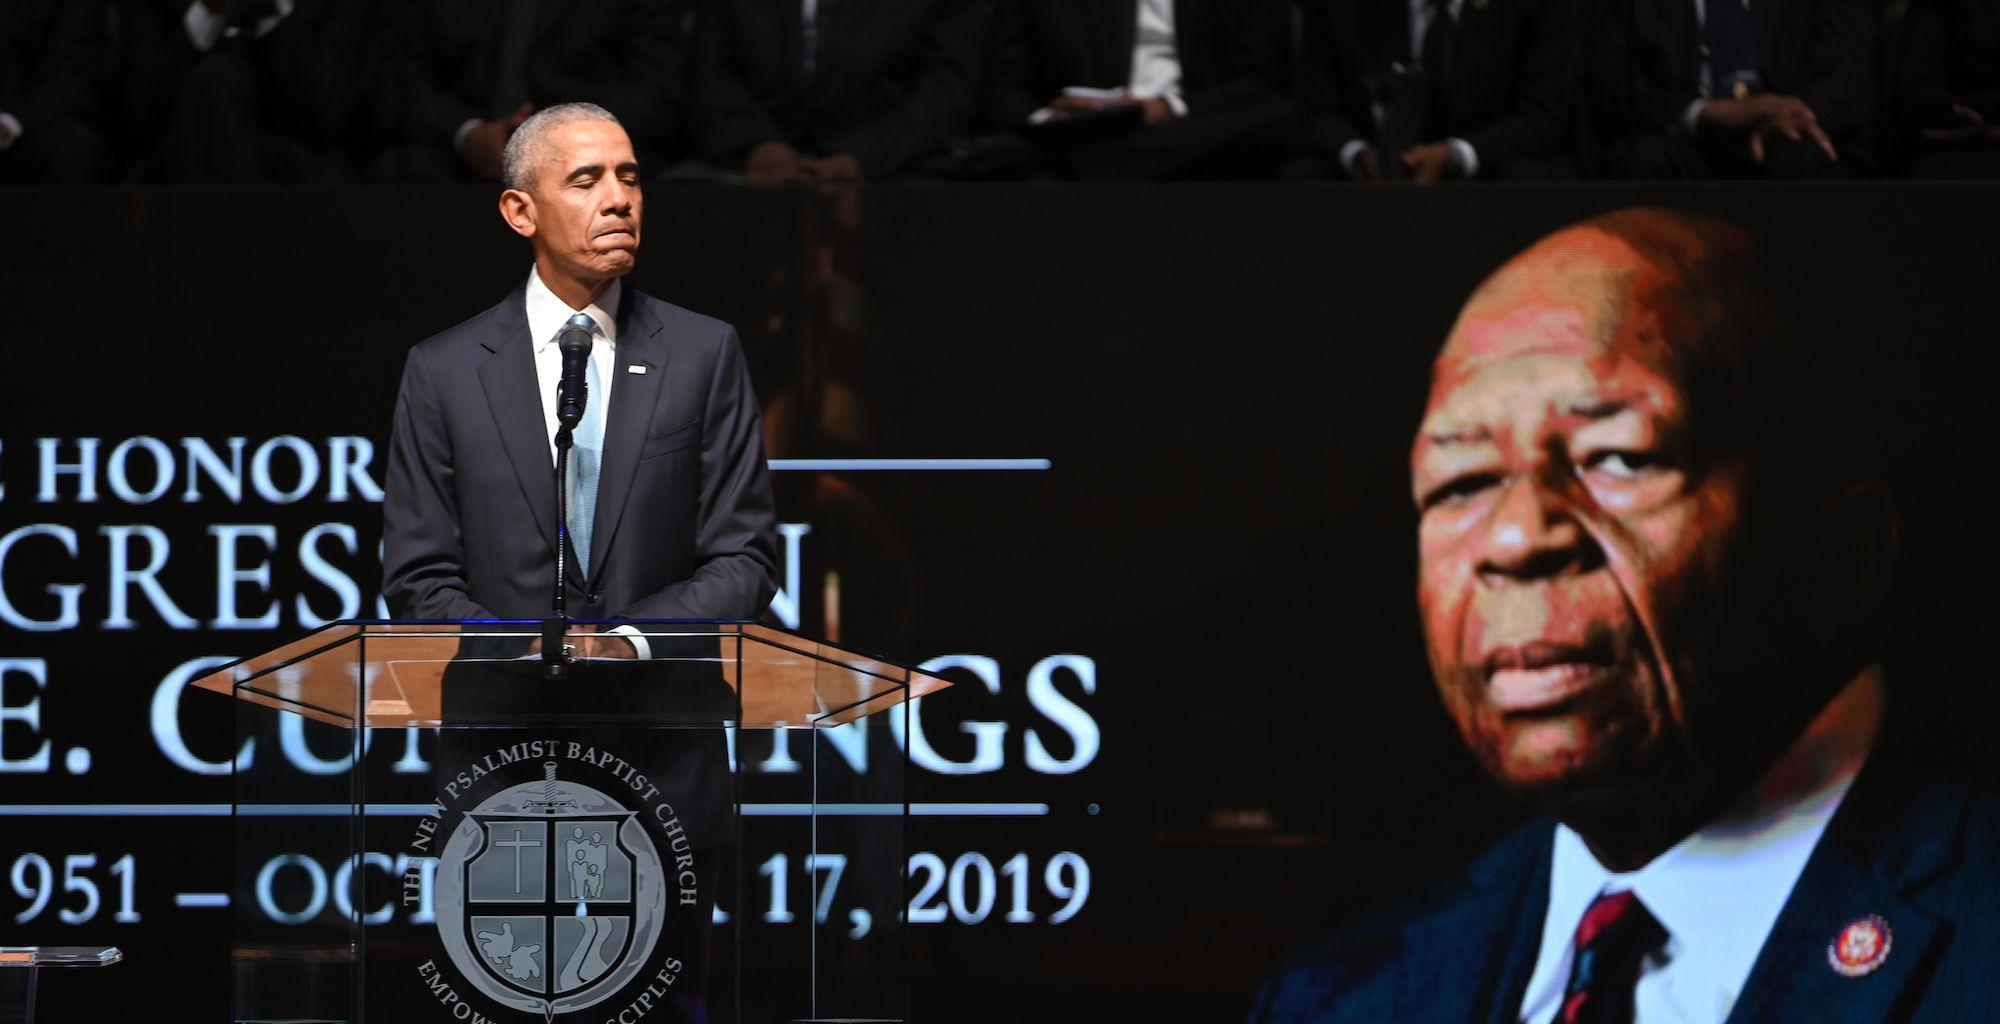 Barack Obama Delivers Emotional Eulogy For Rep. Elijah Cummings, President Donald Trump Was Not Present At The Funeral